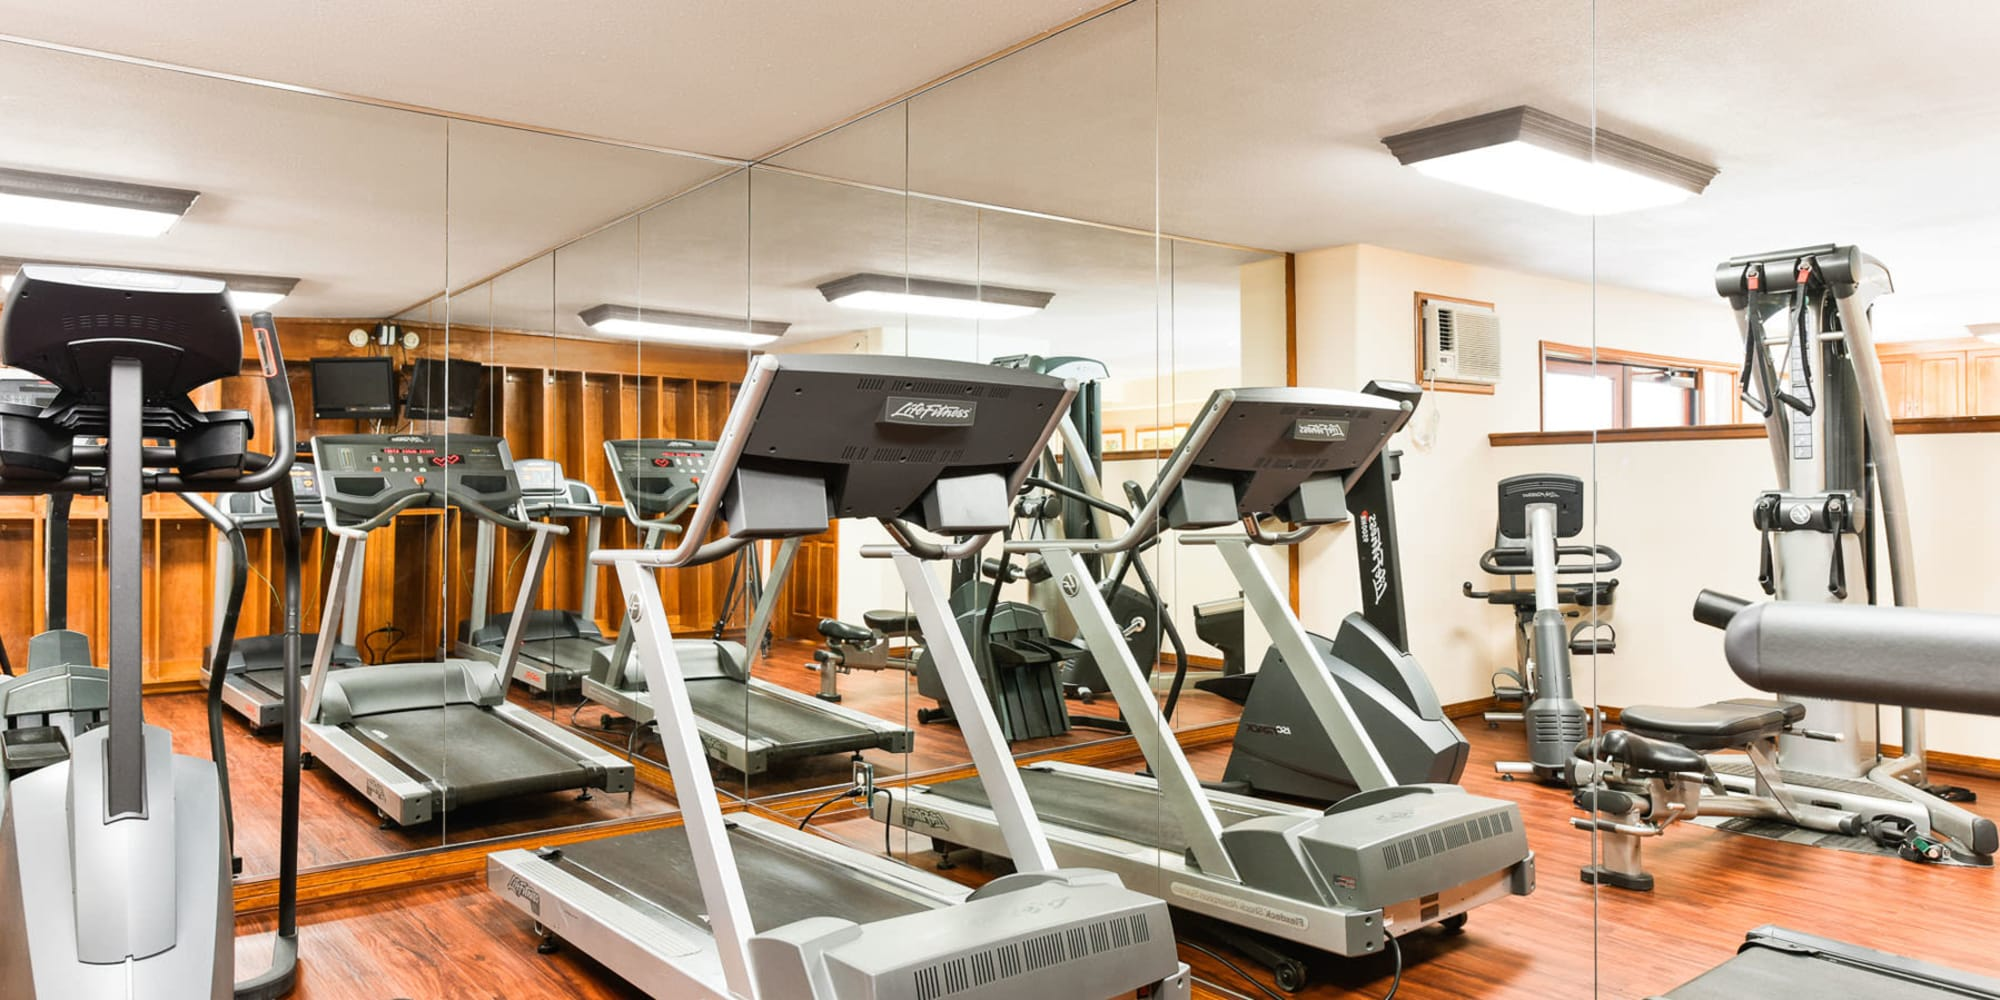 Well-equipped onsite fitness center at Village Pointe in Northridge, California